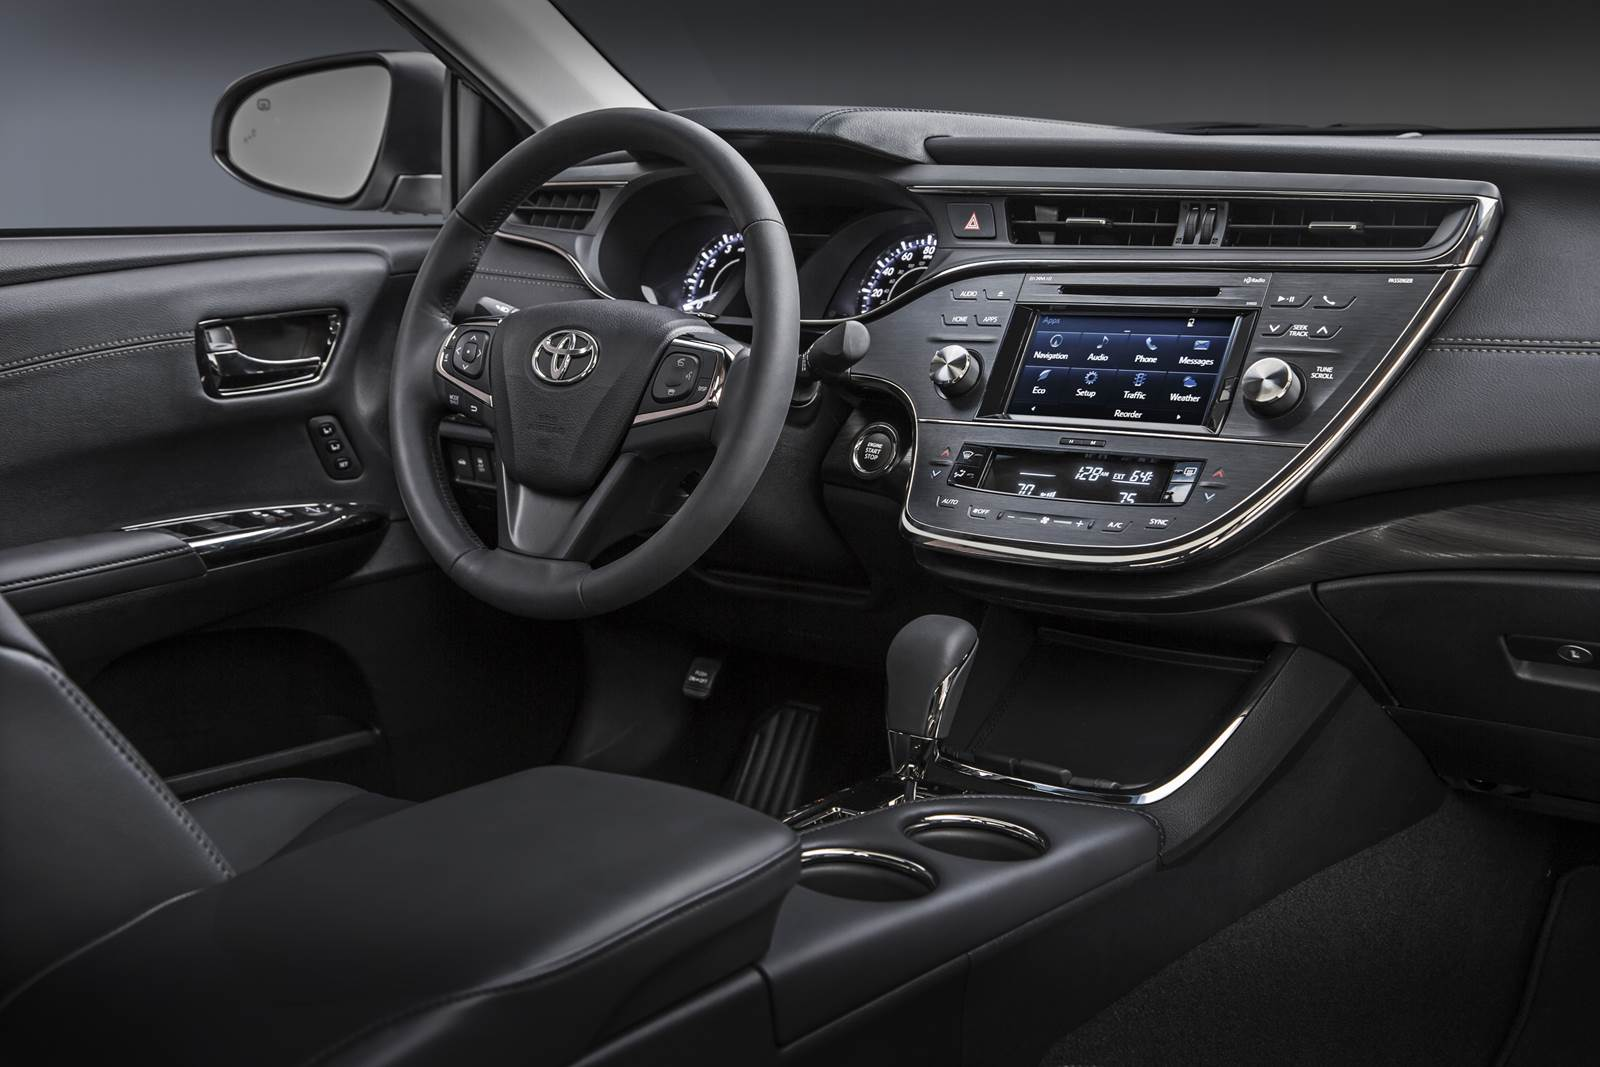 2016 Toyota Avalon - interior